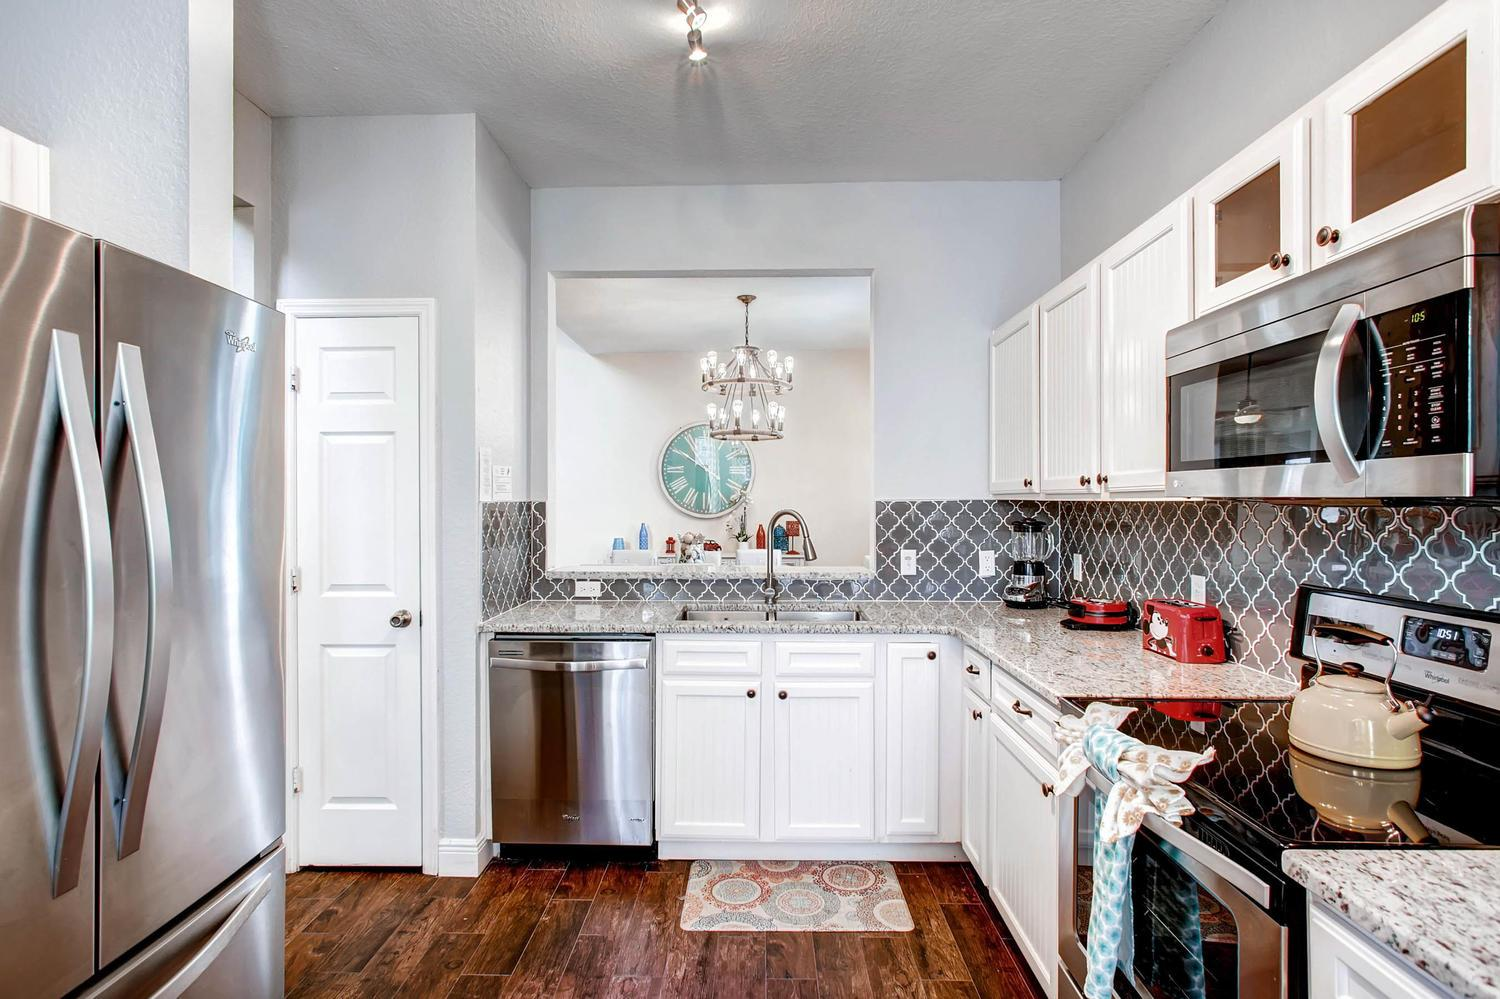 Fully equipped kitchen w coffee maker, keurig, blender slow cooker, toaster, griddle and more